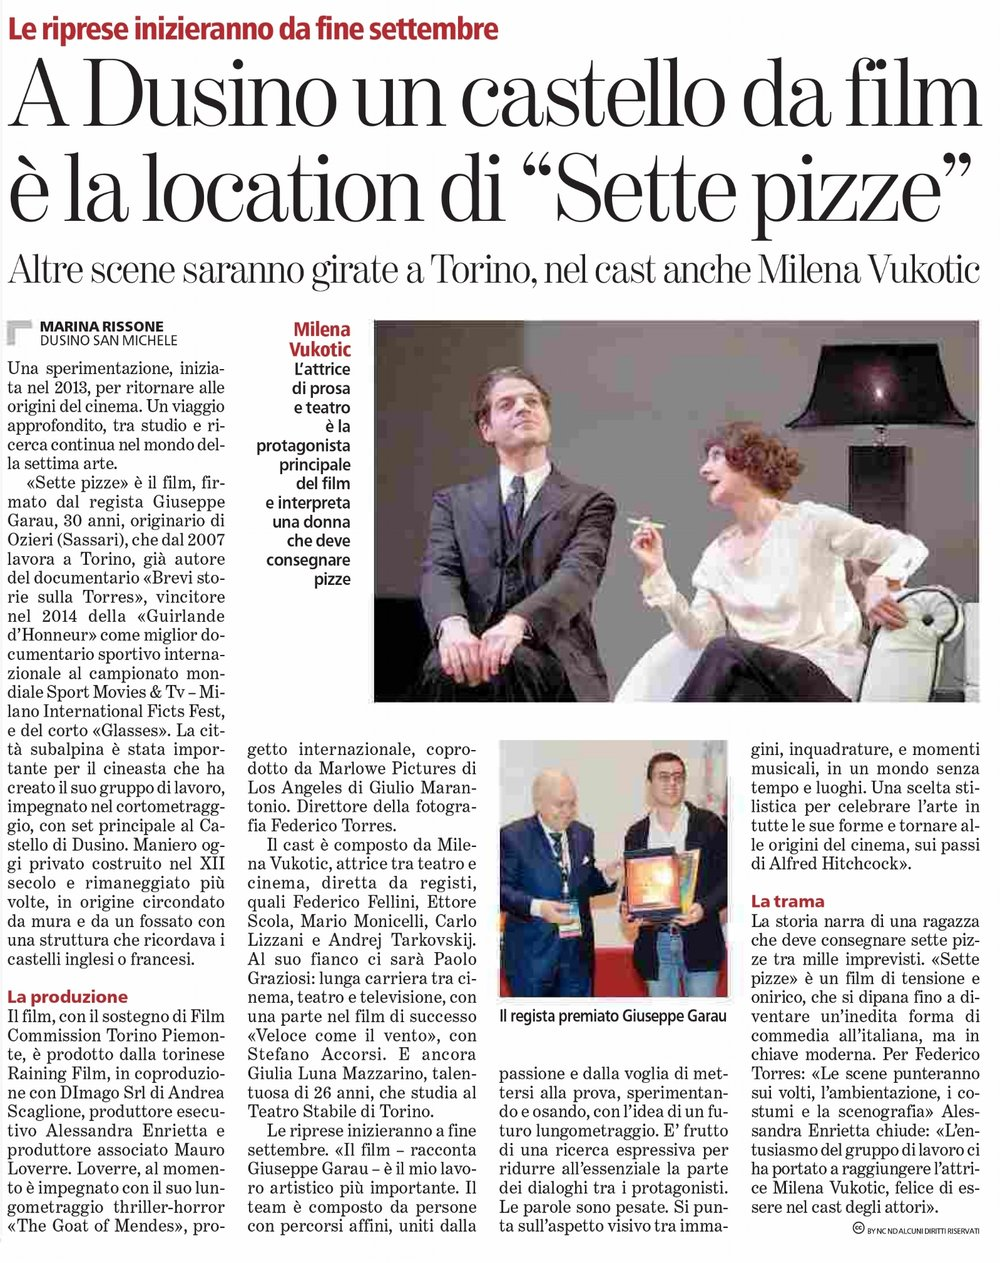 LaStampa_at_20160907_048.jpg